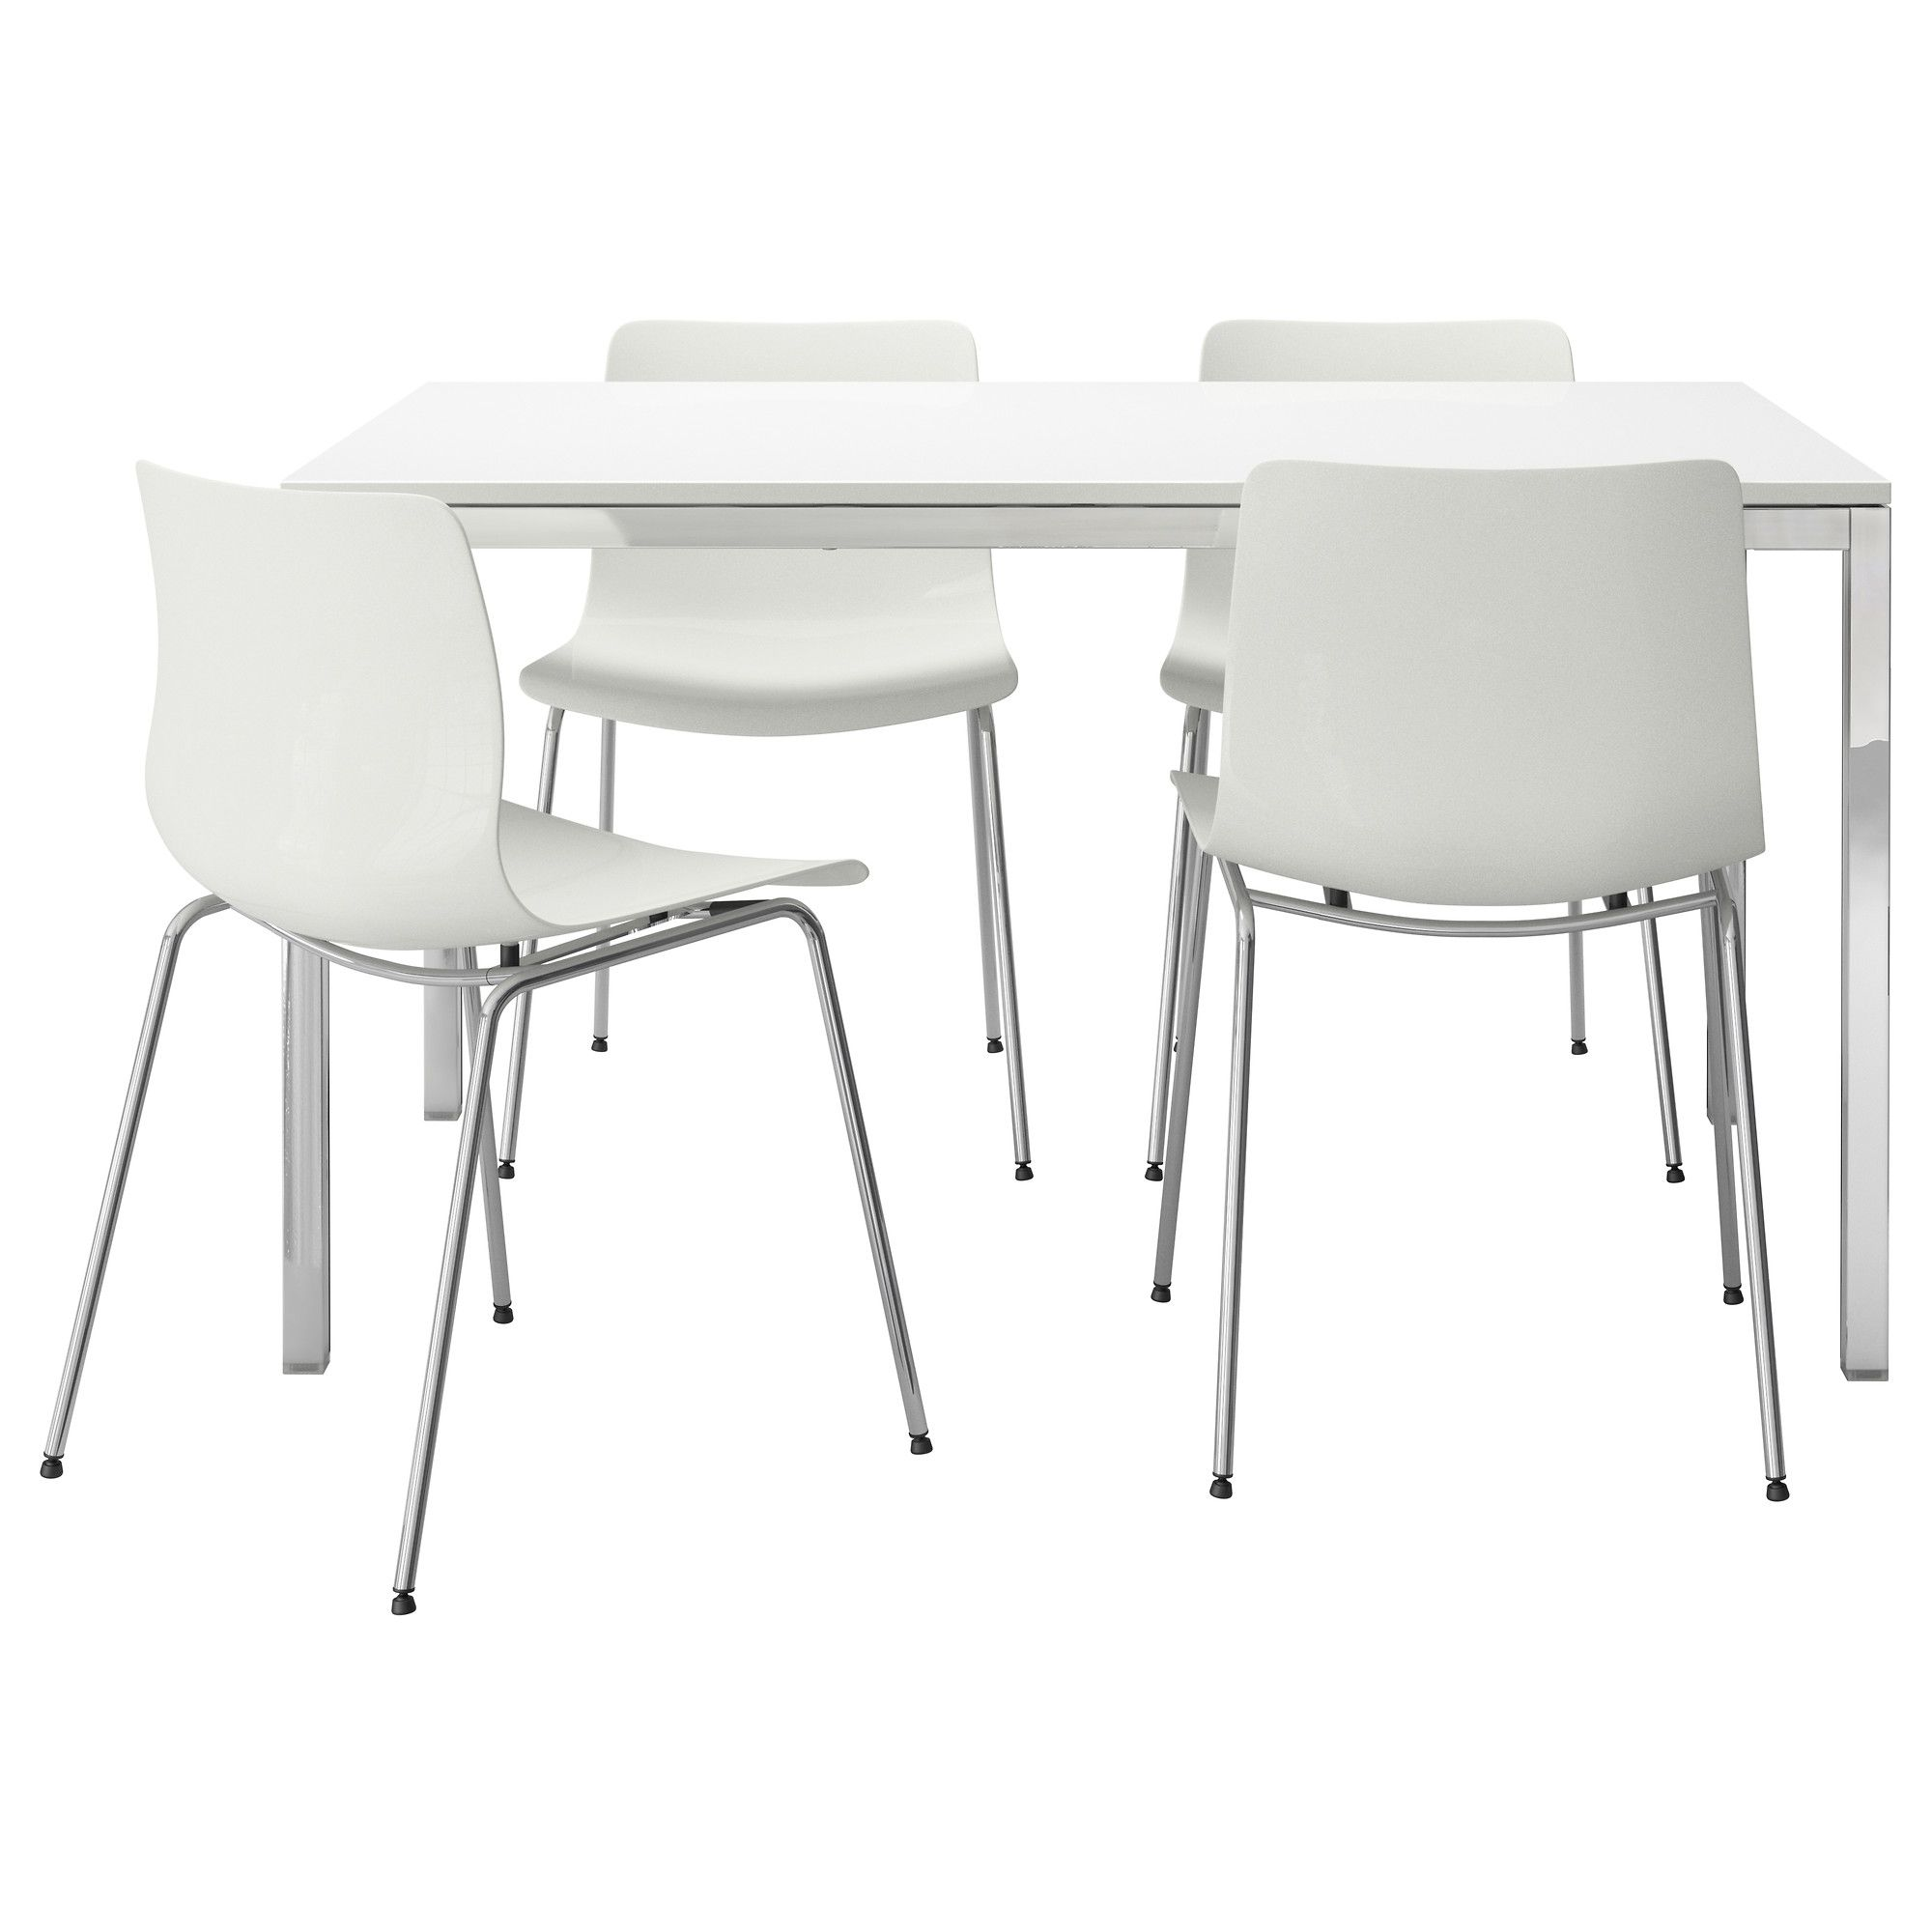 kitchen table torsby erland table and 4 chairs ikea creative